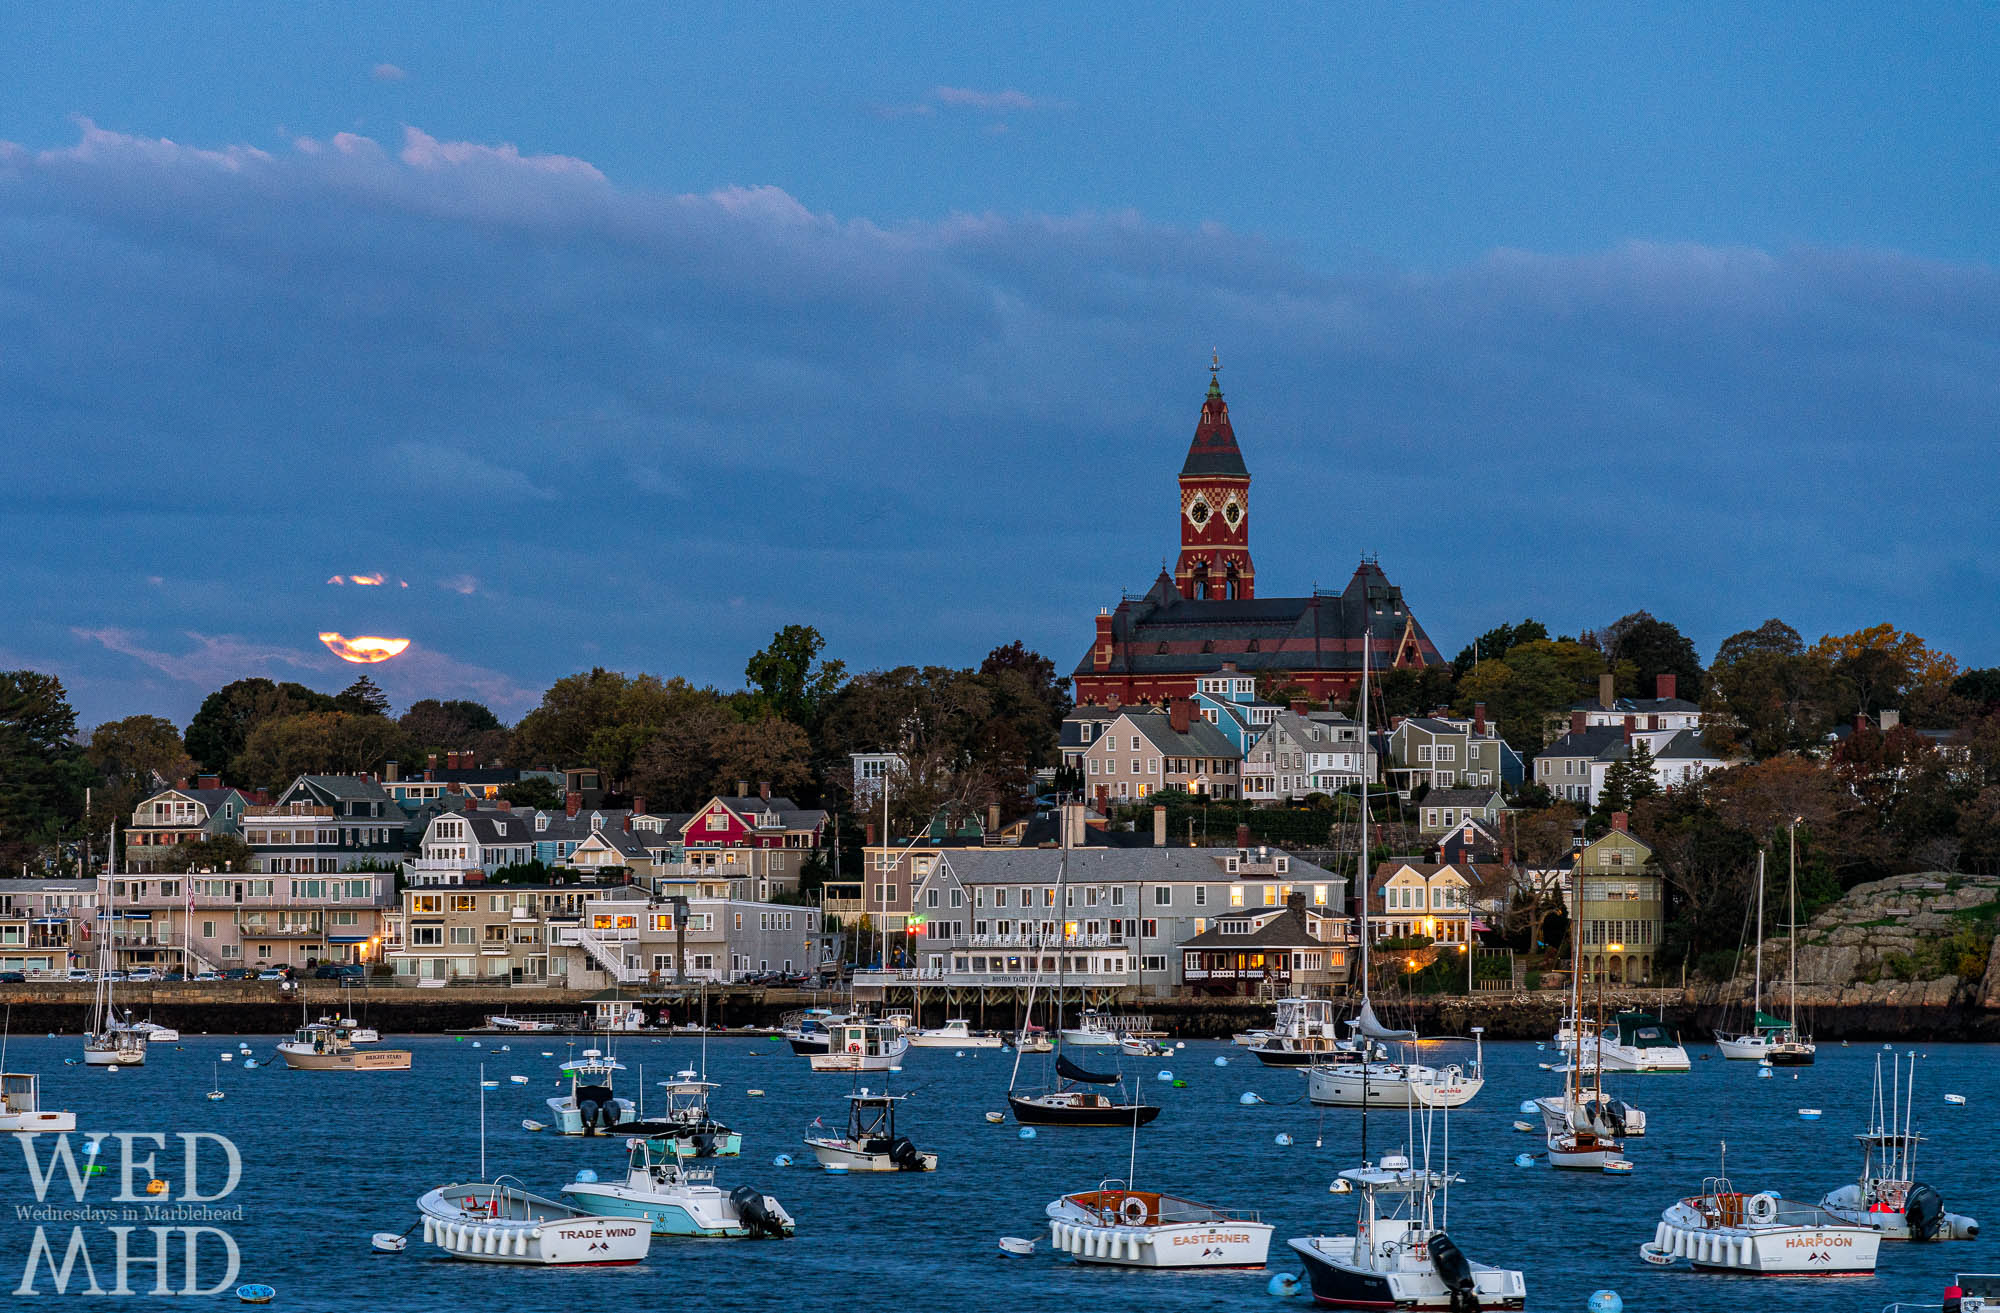 Watching the moonset from Harvard Street on Marblehead Neck before dawn on a warm late-October day